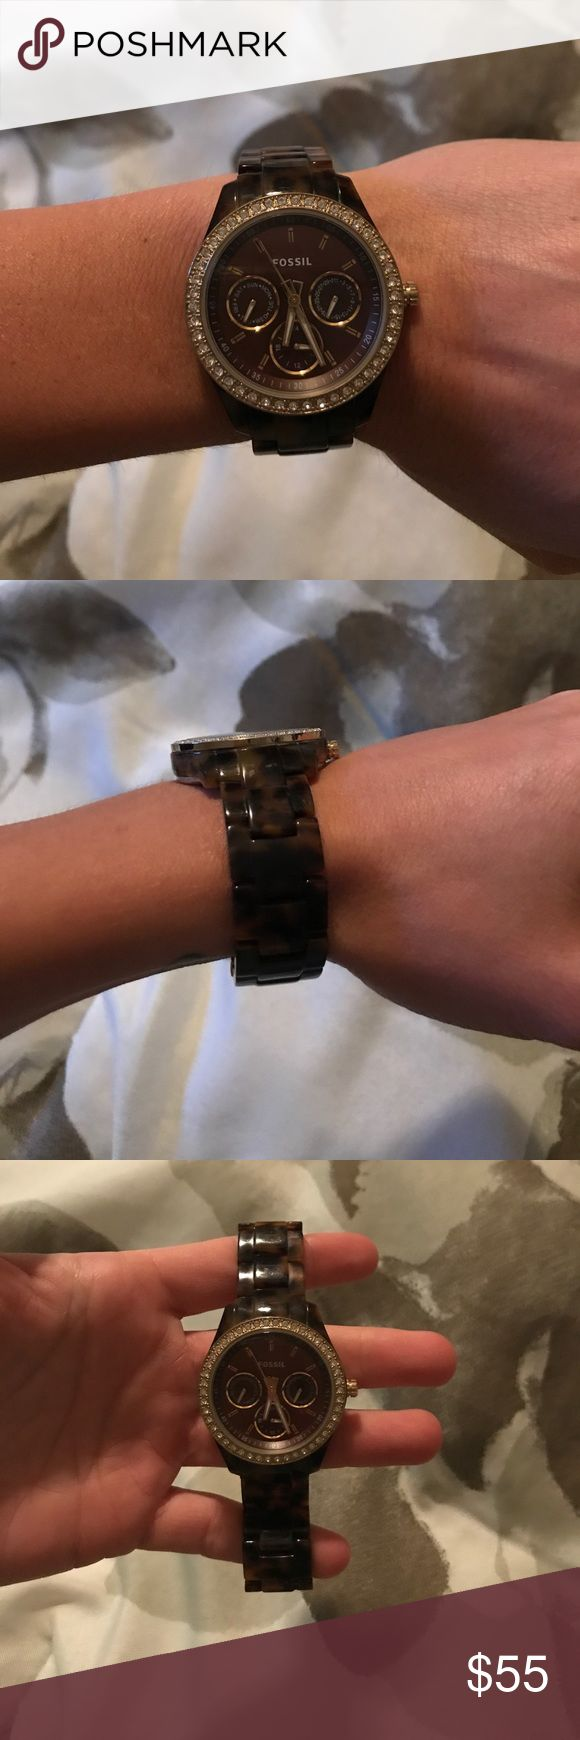 Fossil tortoise shell watch Excellent used condition fossil watch with tortoise shell design. Needs new battery. Fossil Accessories Watches